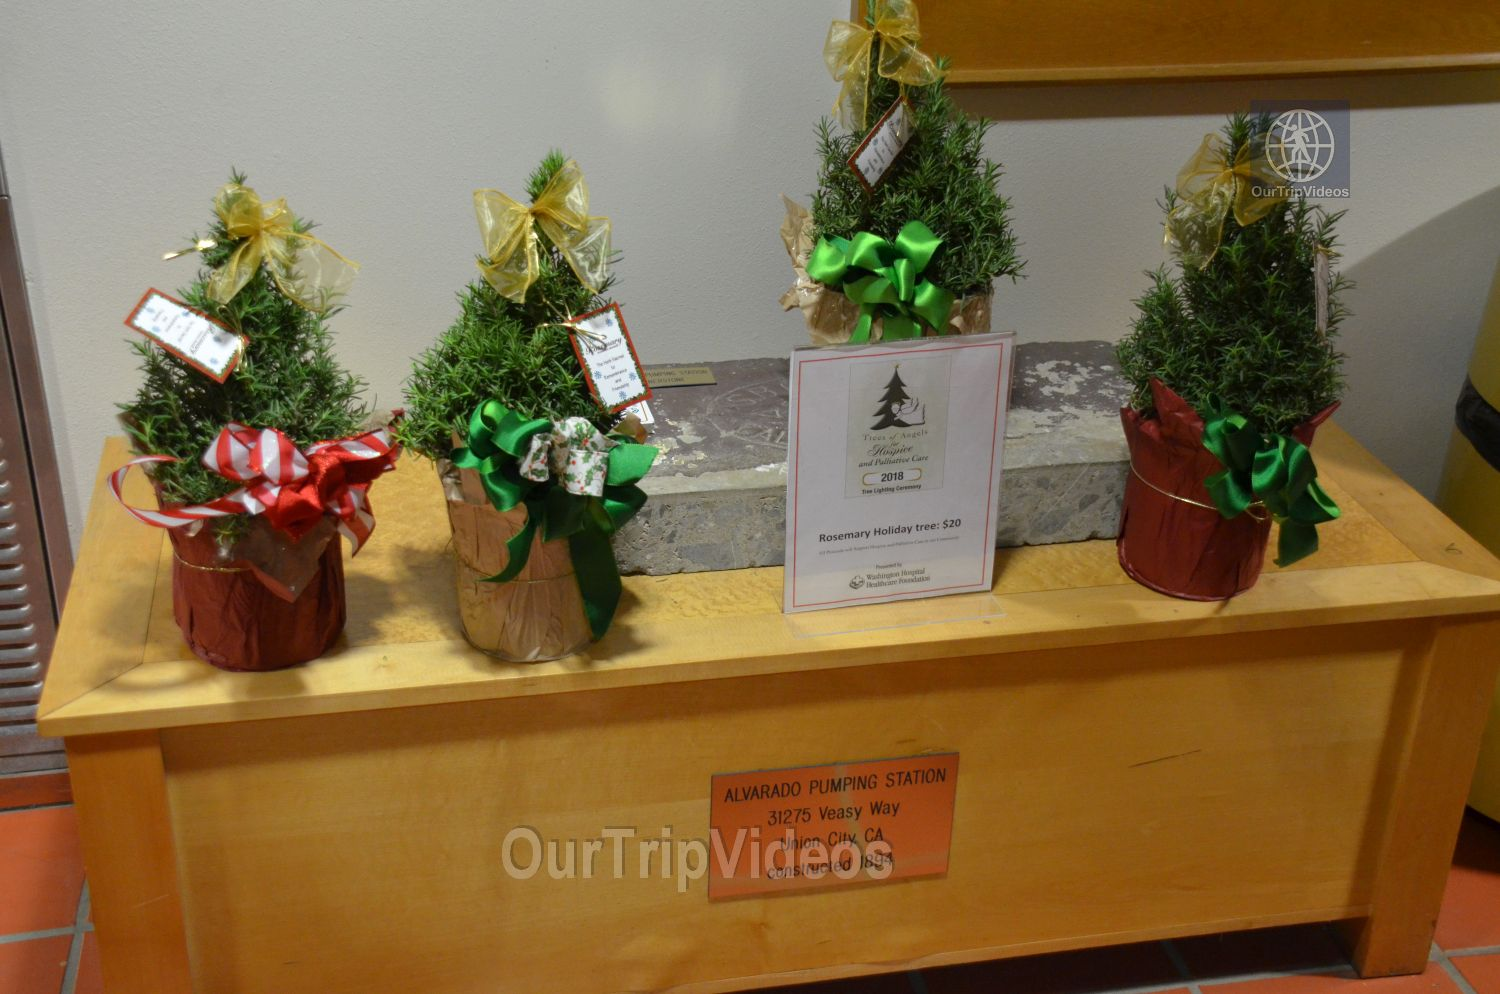 Trees of Angels Celebrations by WHHS, Union City, CA, USA - Picture 19 of 25